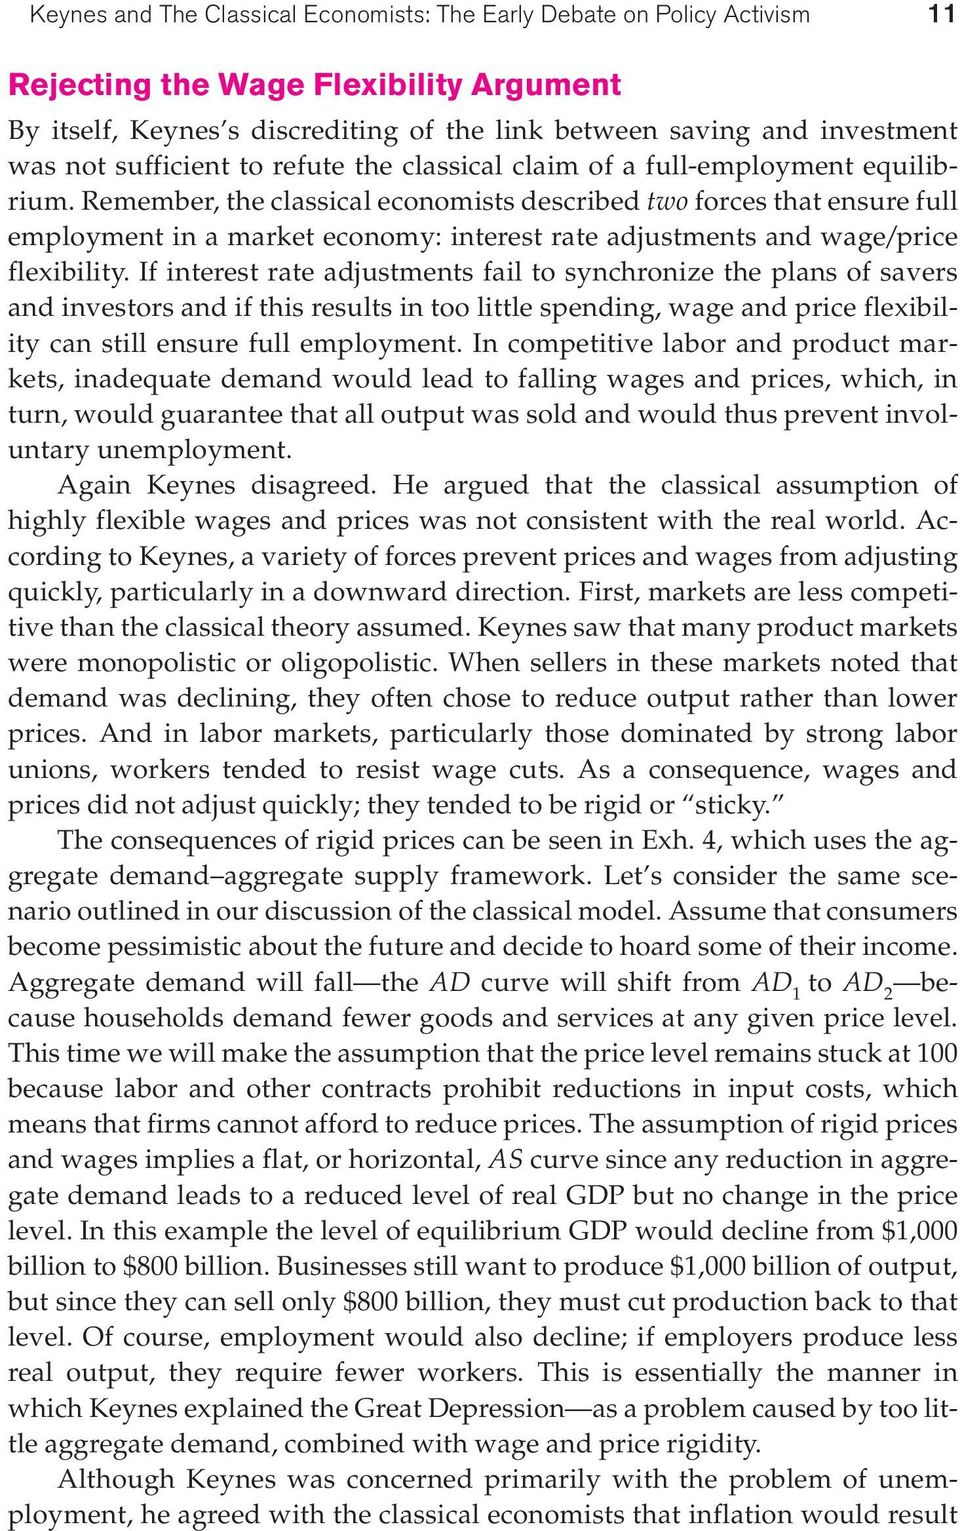 Remember, the classical economists described two forces that ensure full employment in a market economy: interest rate adjustments and wage/price flexibility.